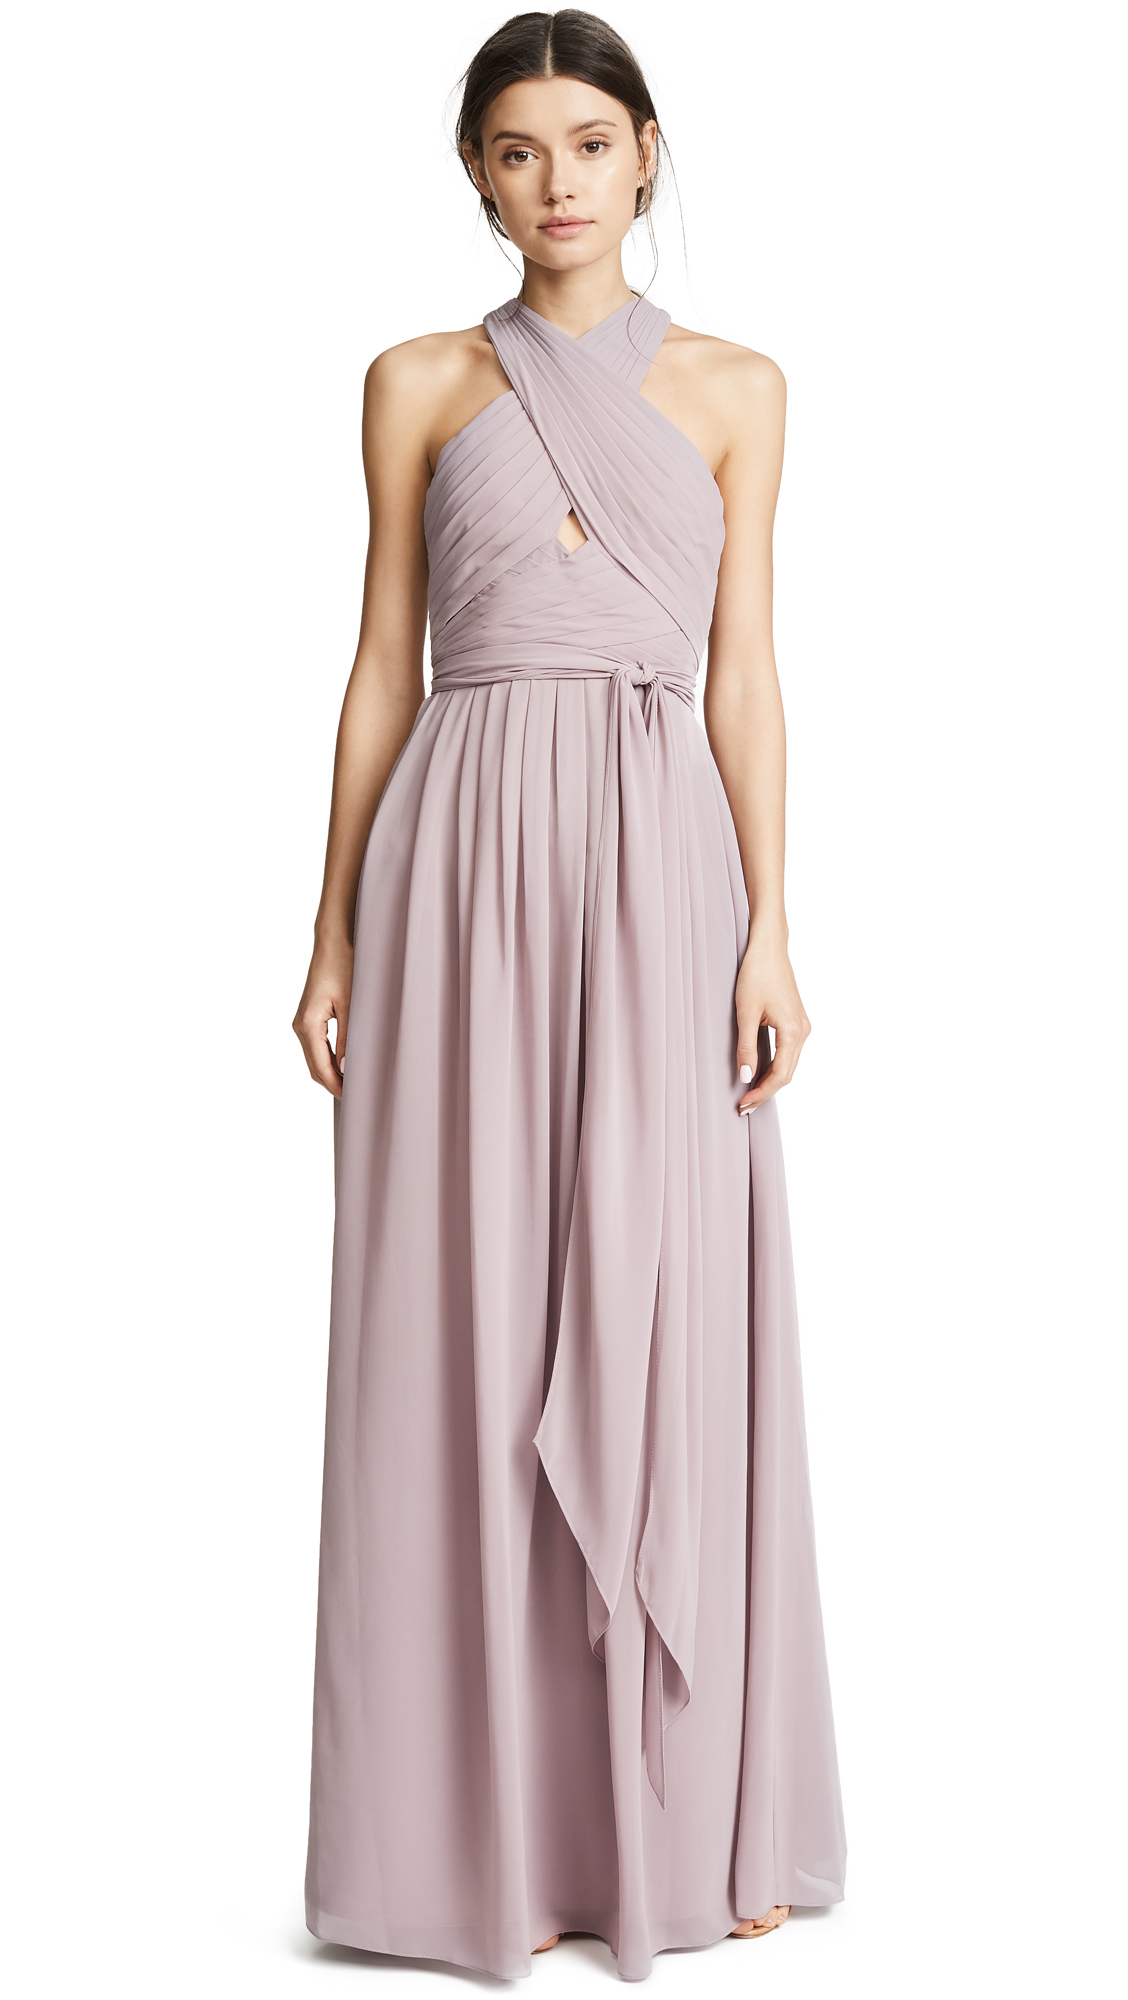 Monique Lhuillier Bridesmaids Halter Gown with Cutout In Lilac